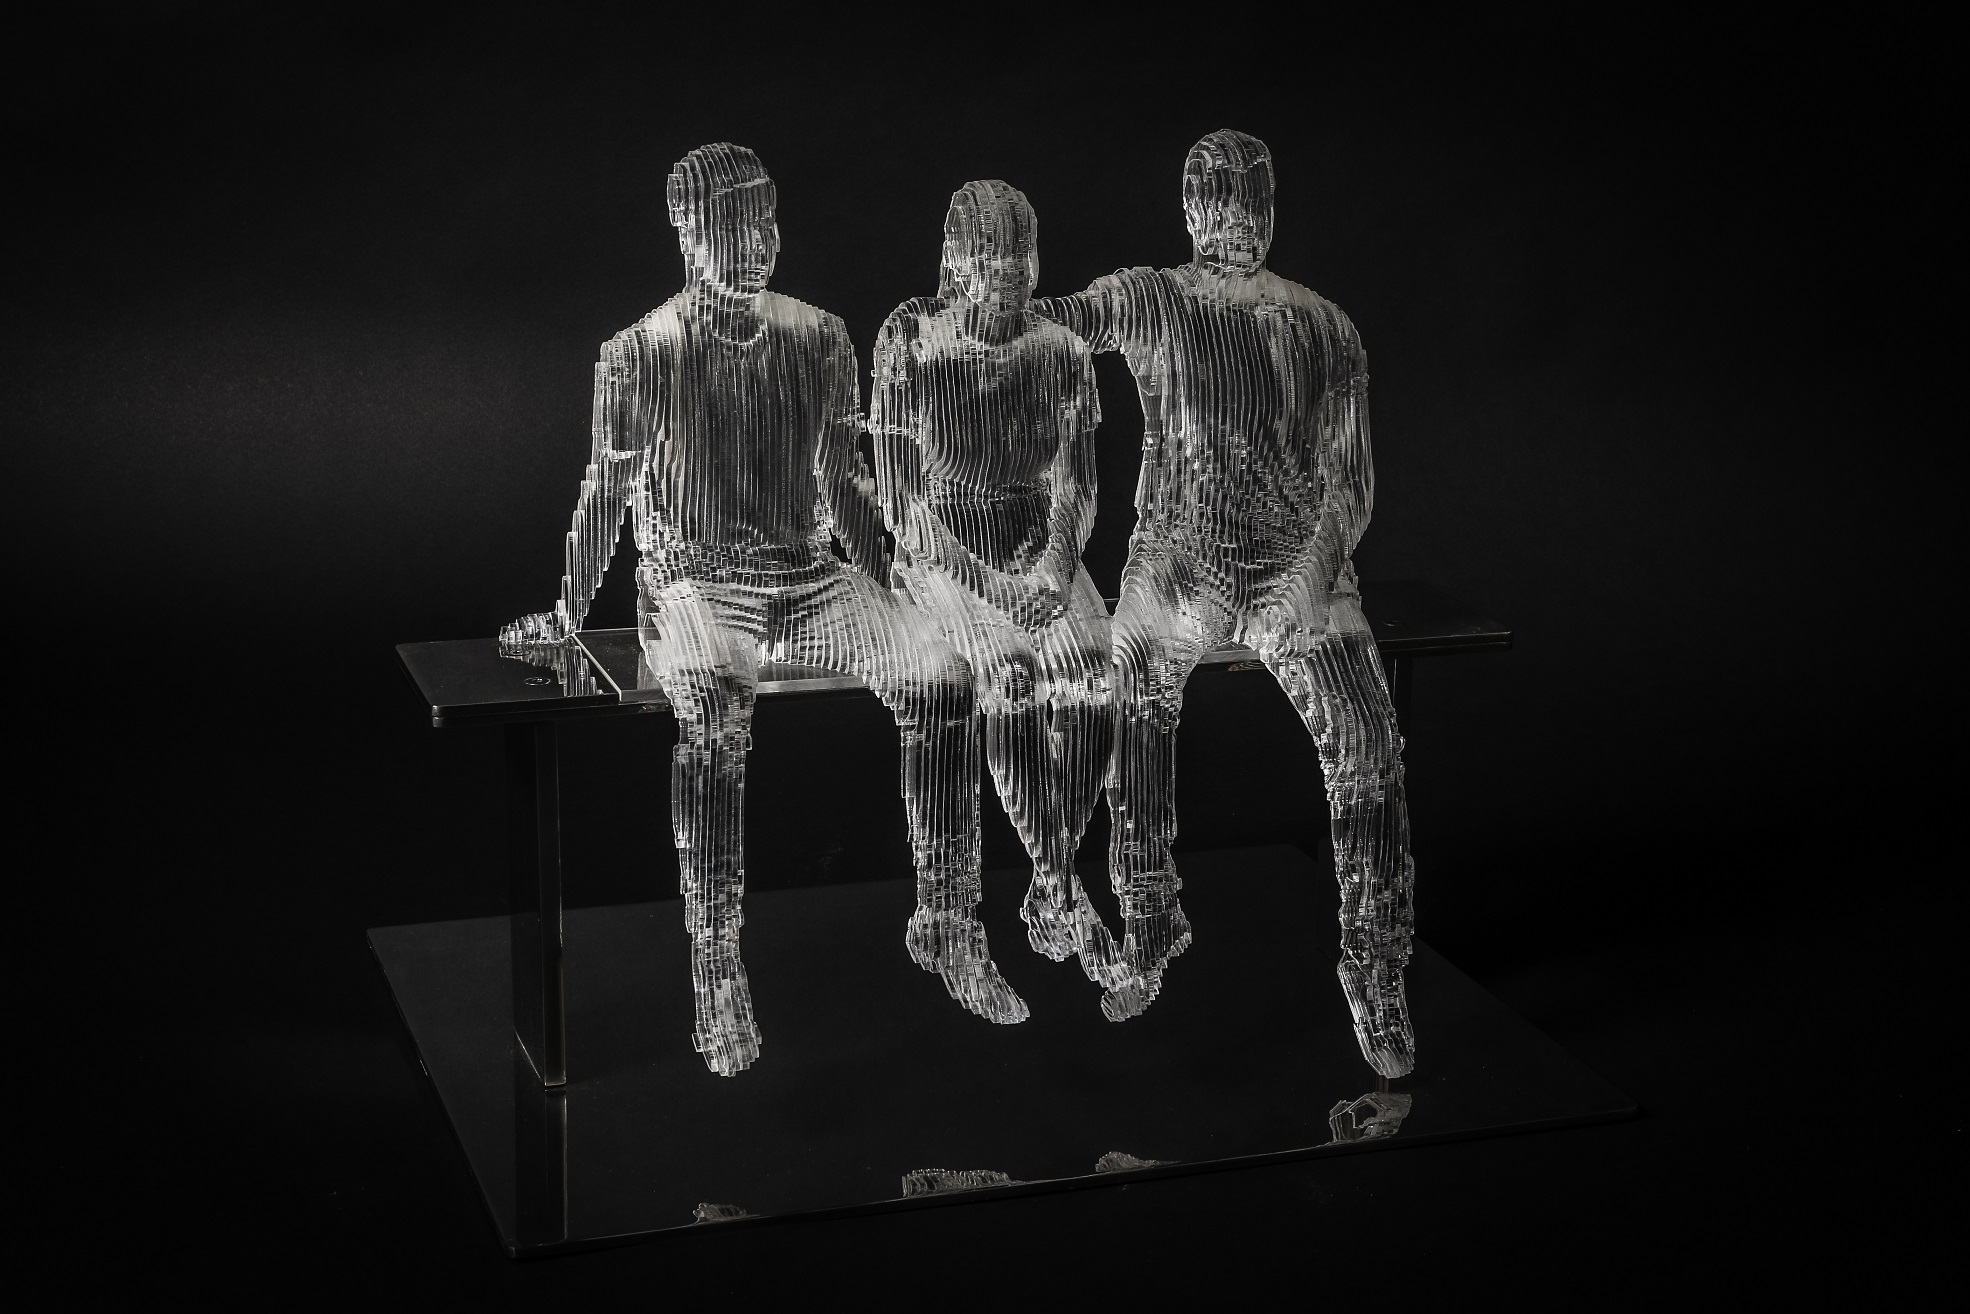 2017 Gang of Three 56cm x 40cm x 42cm extruded acrylic on stainless steel.jpg